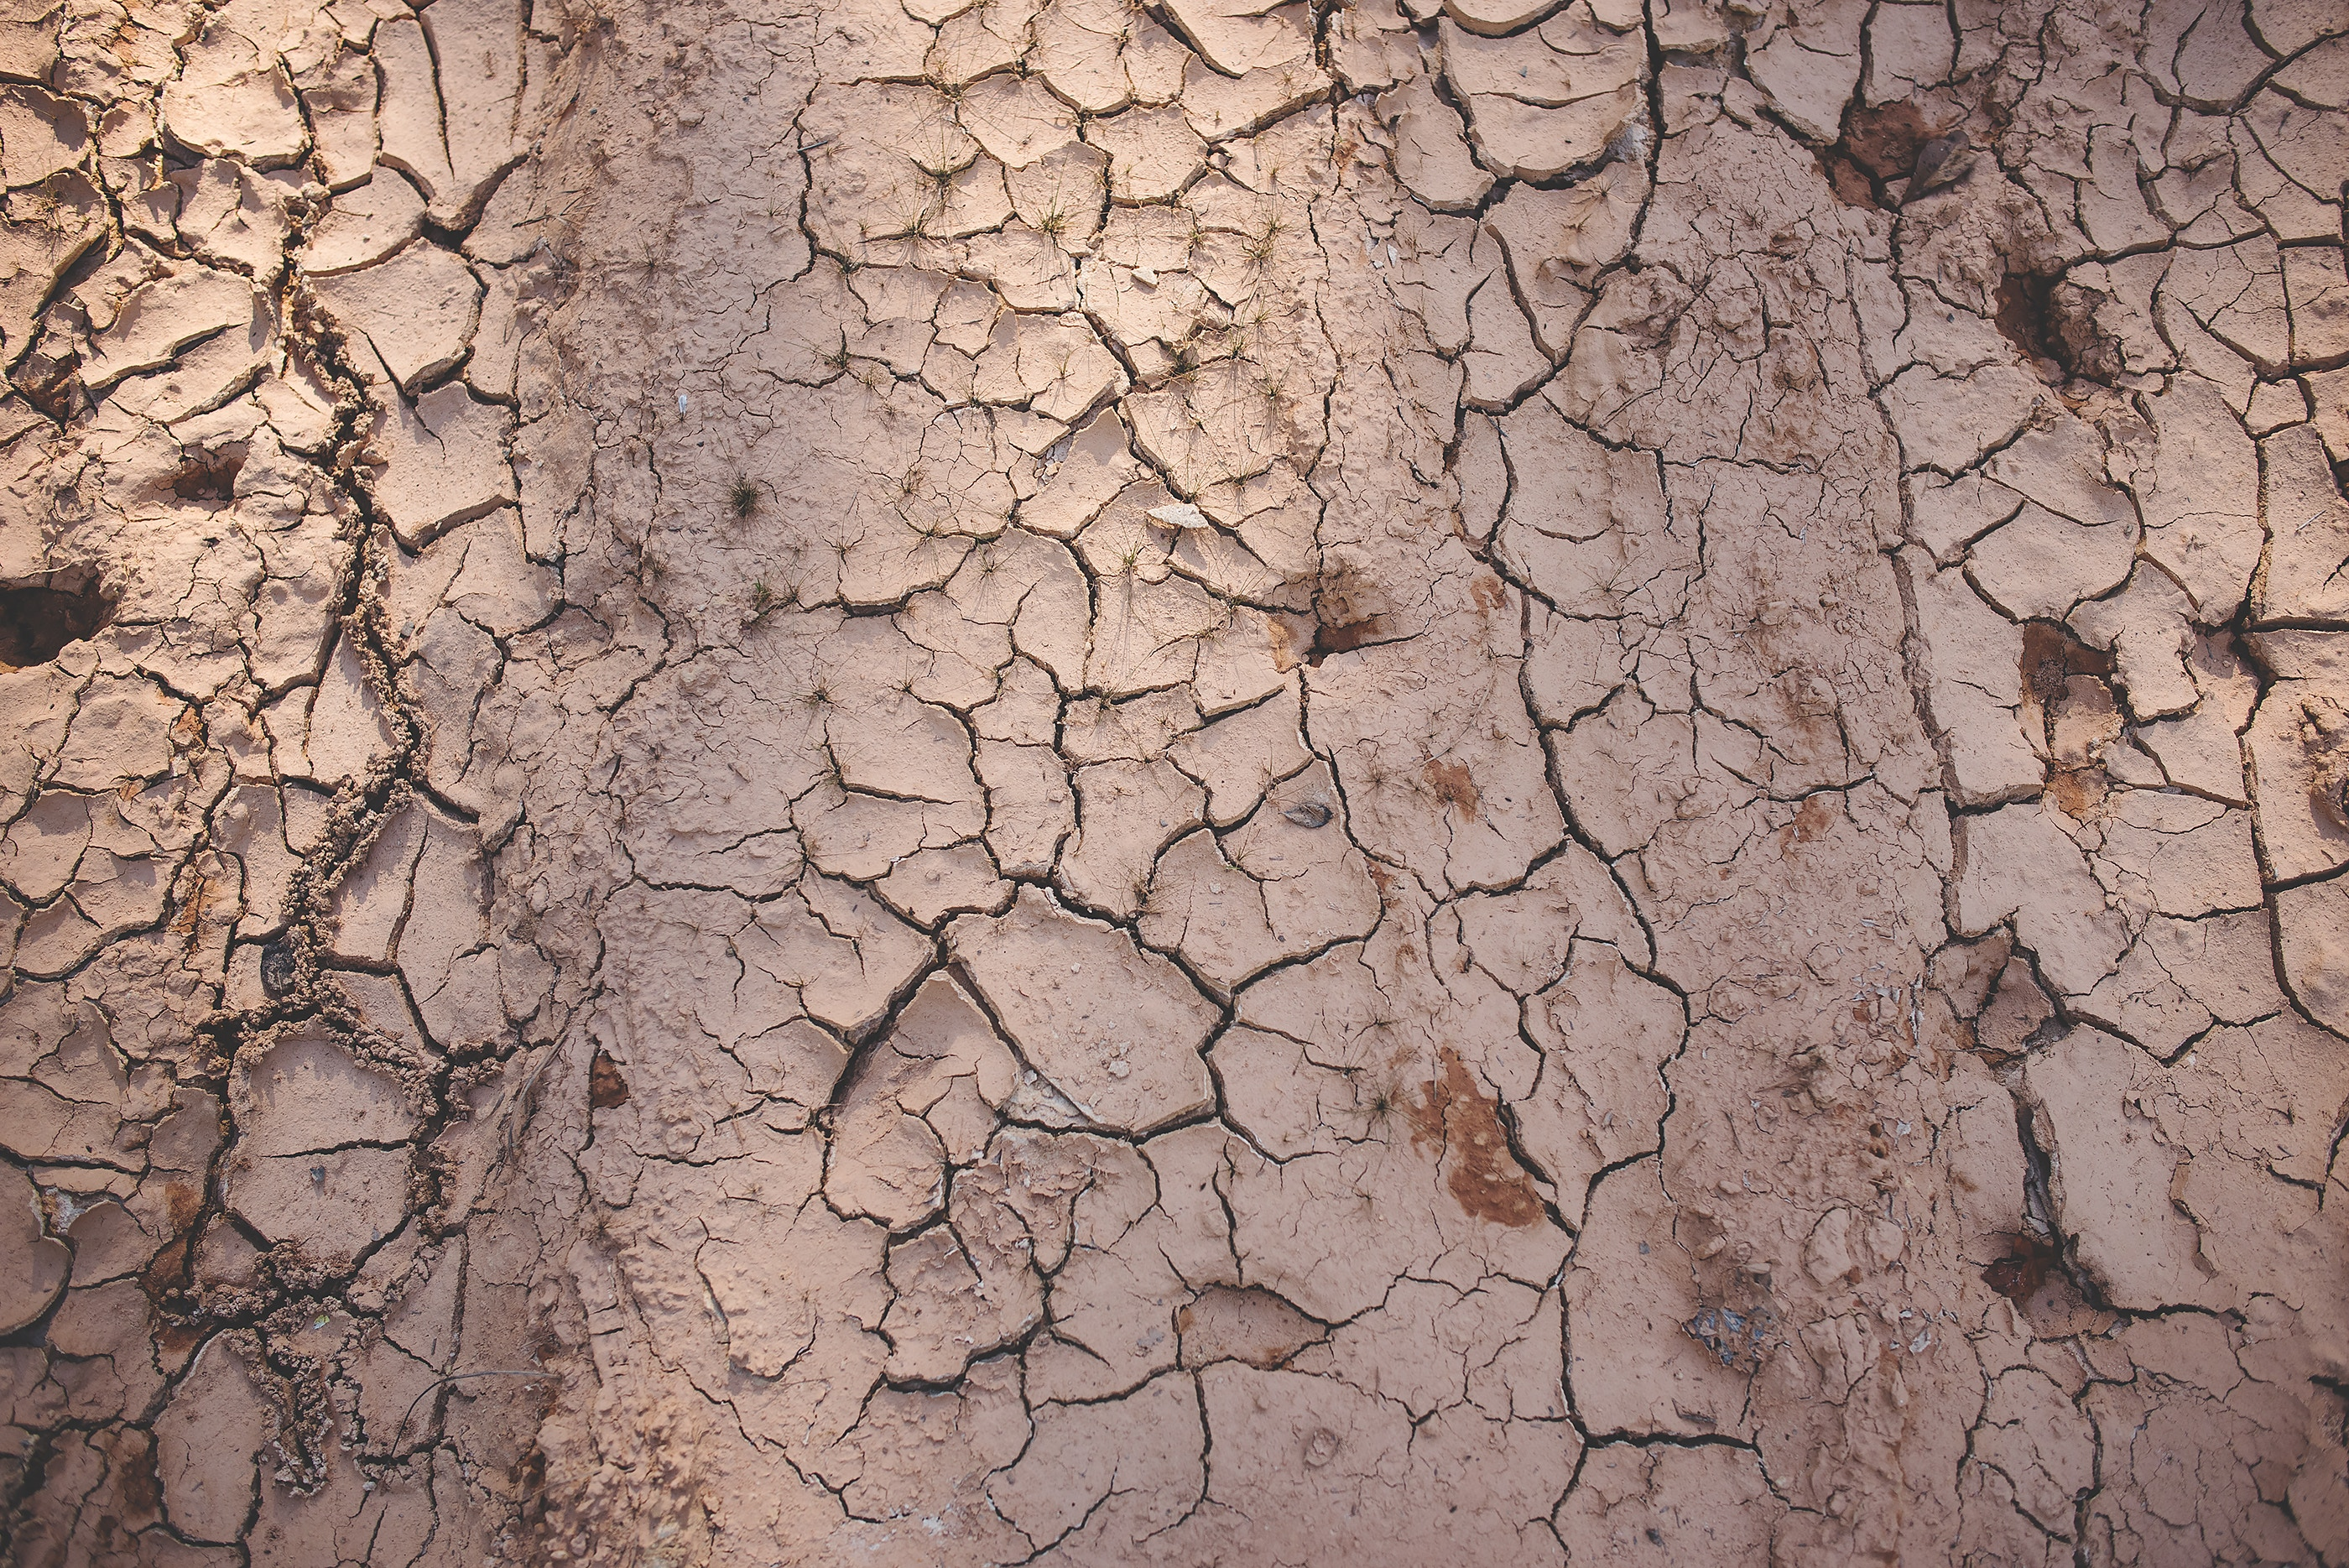 2019 brings harsh drought conditions to Kenya